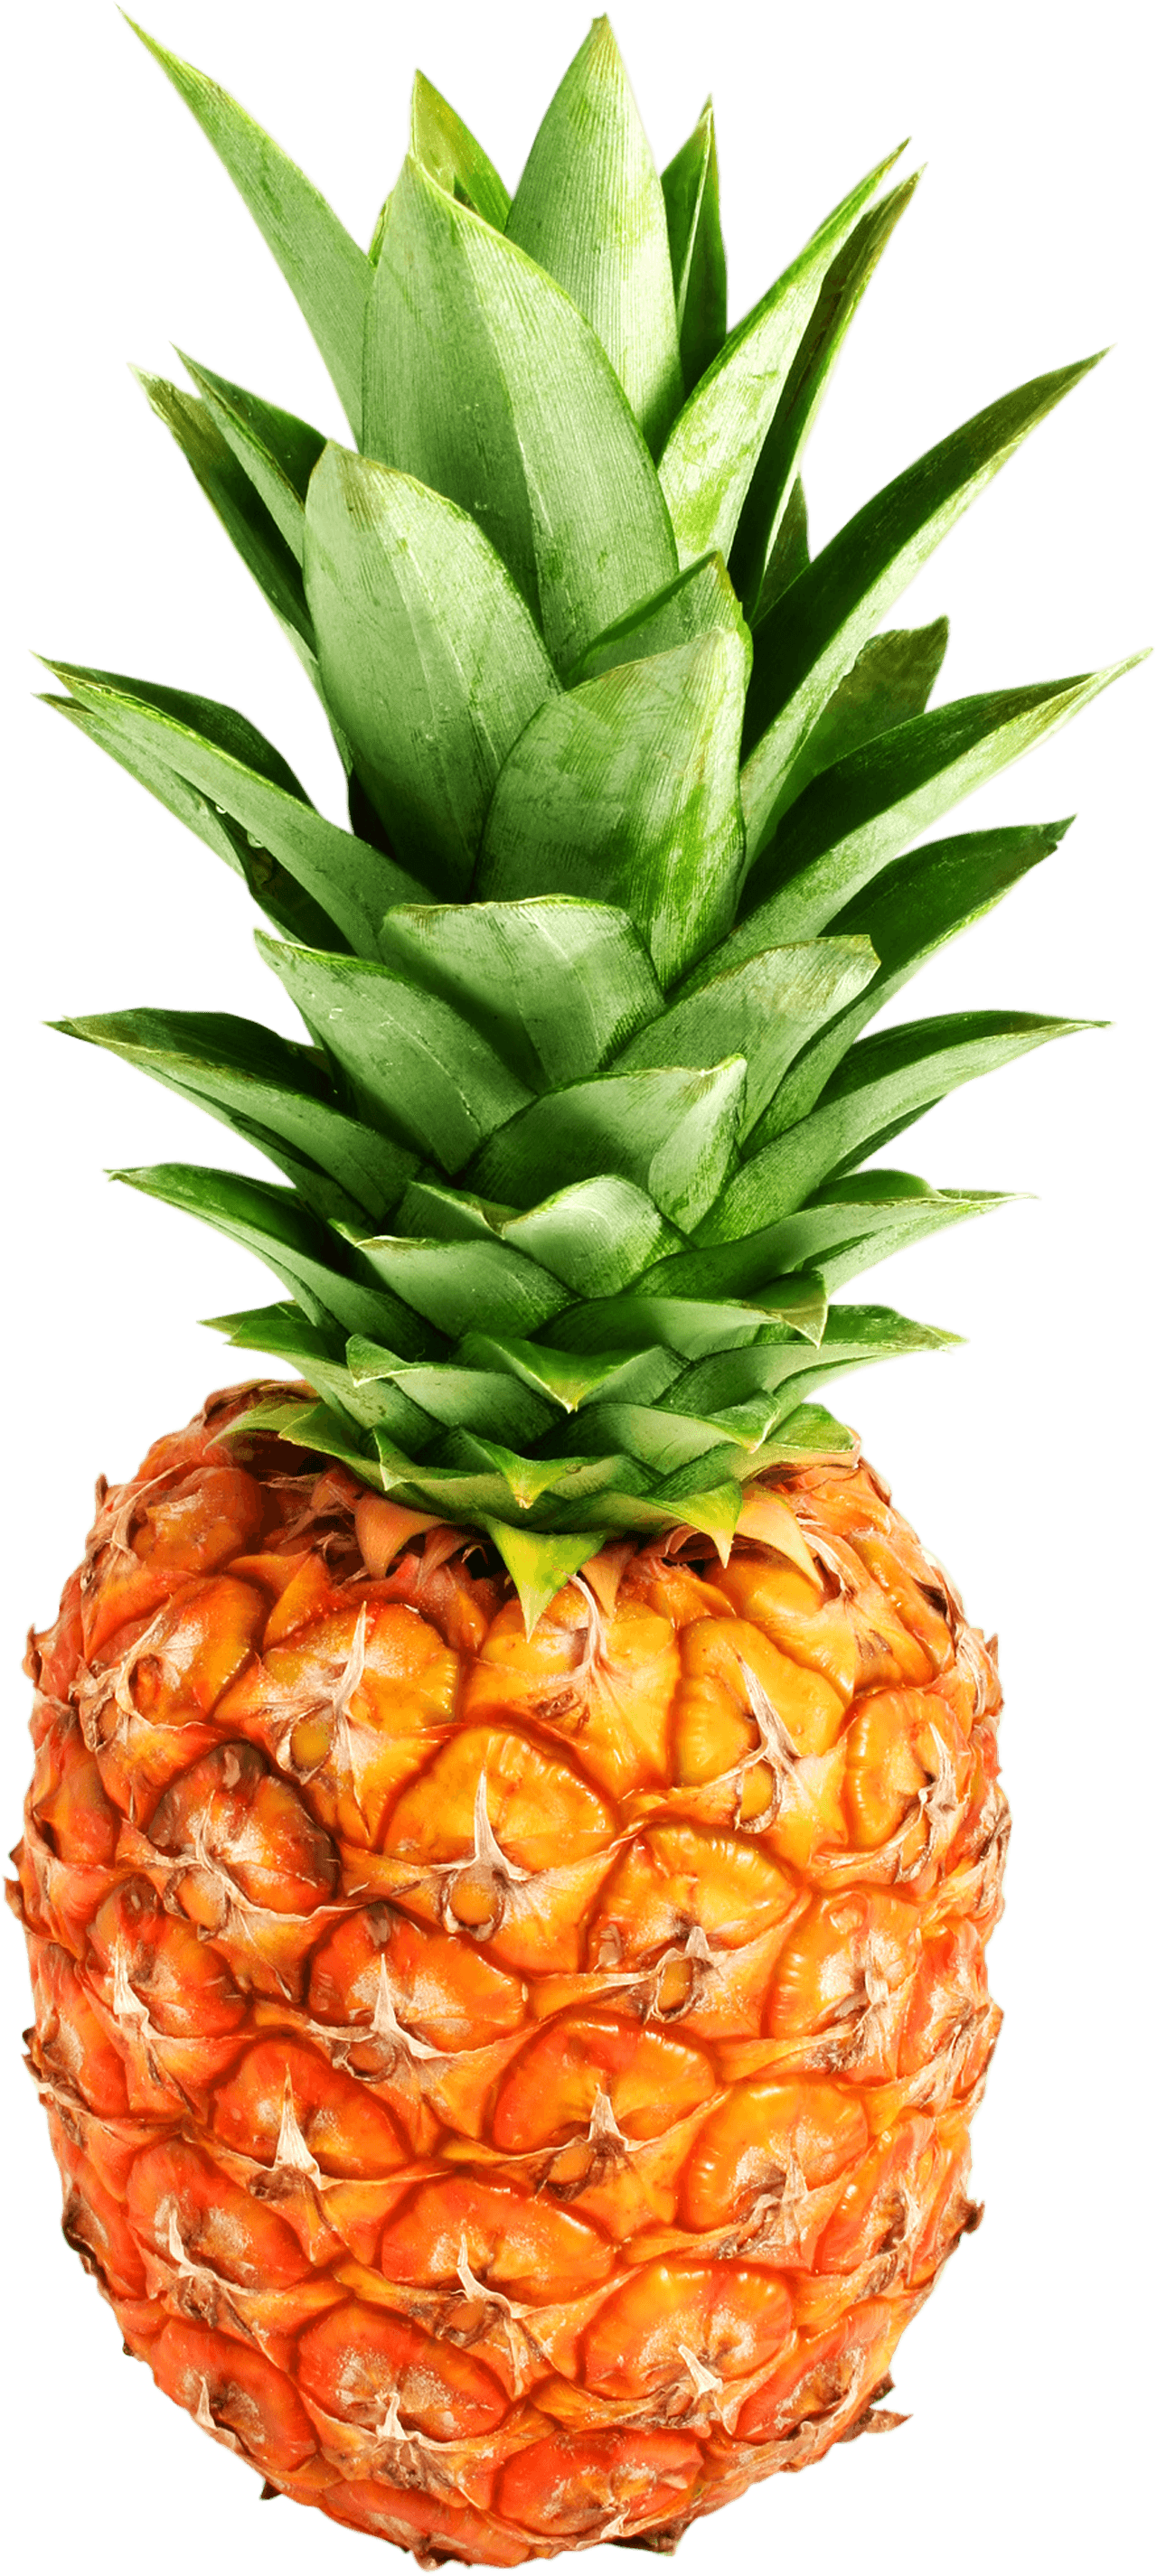 Download Pineapple Png Image Download Hq Png Image Freepngimg Pineapple juice smoothie fruit honey, pineapple png. download pineapple png image download